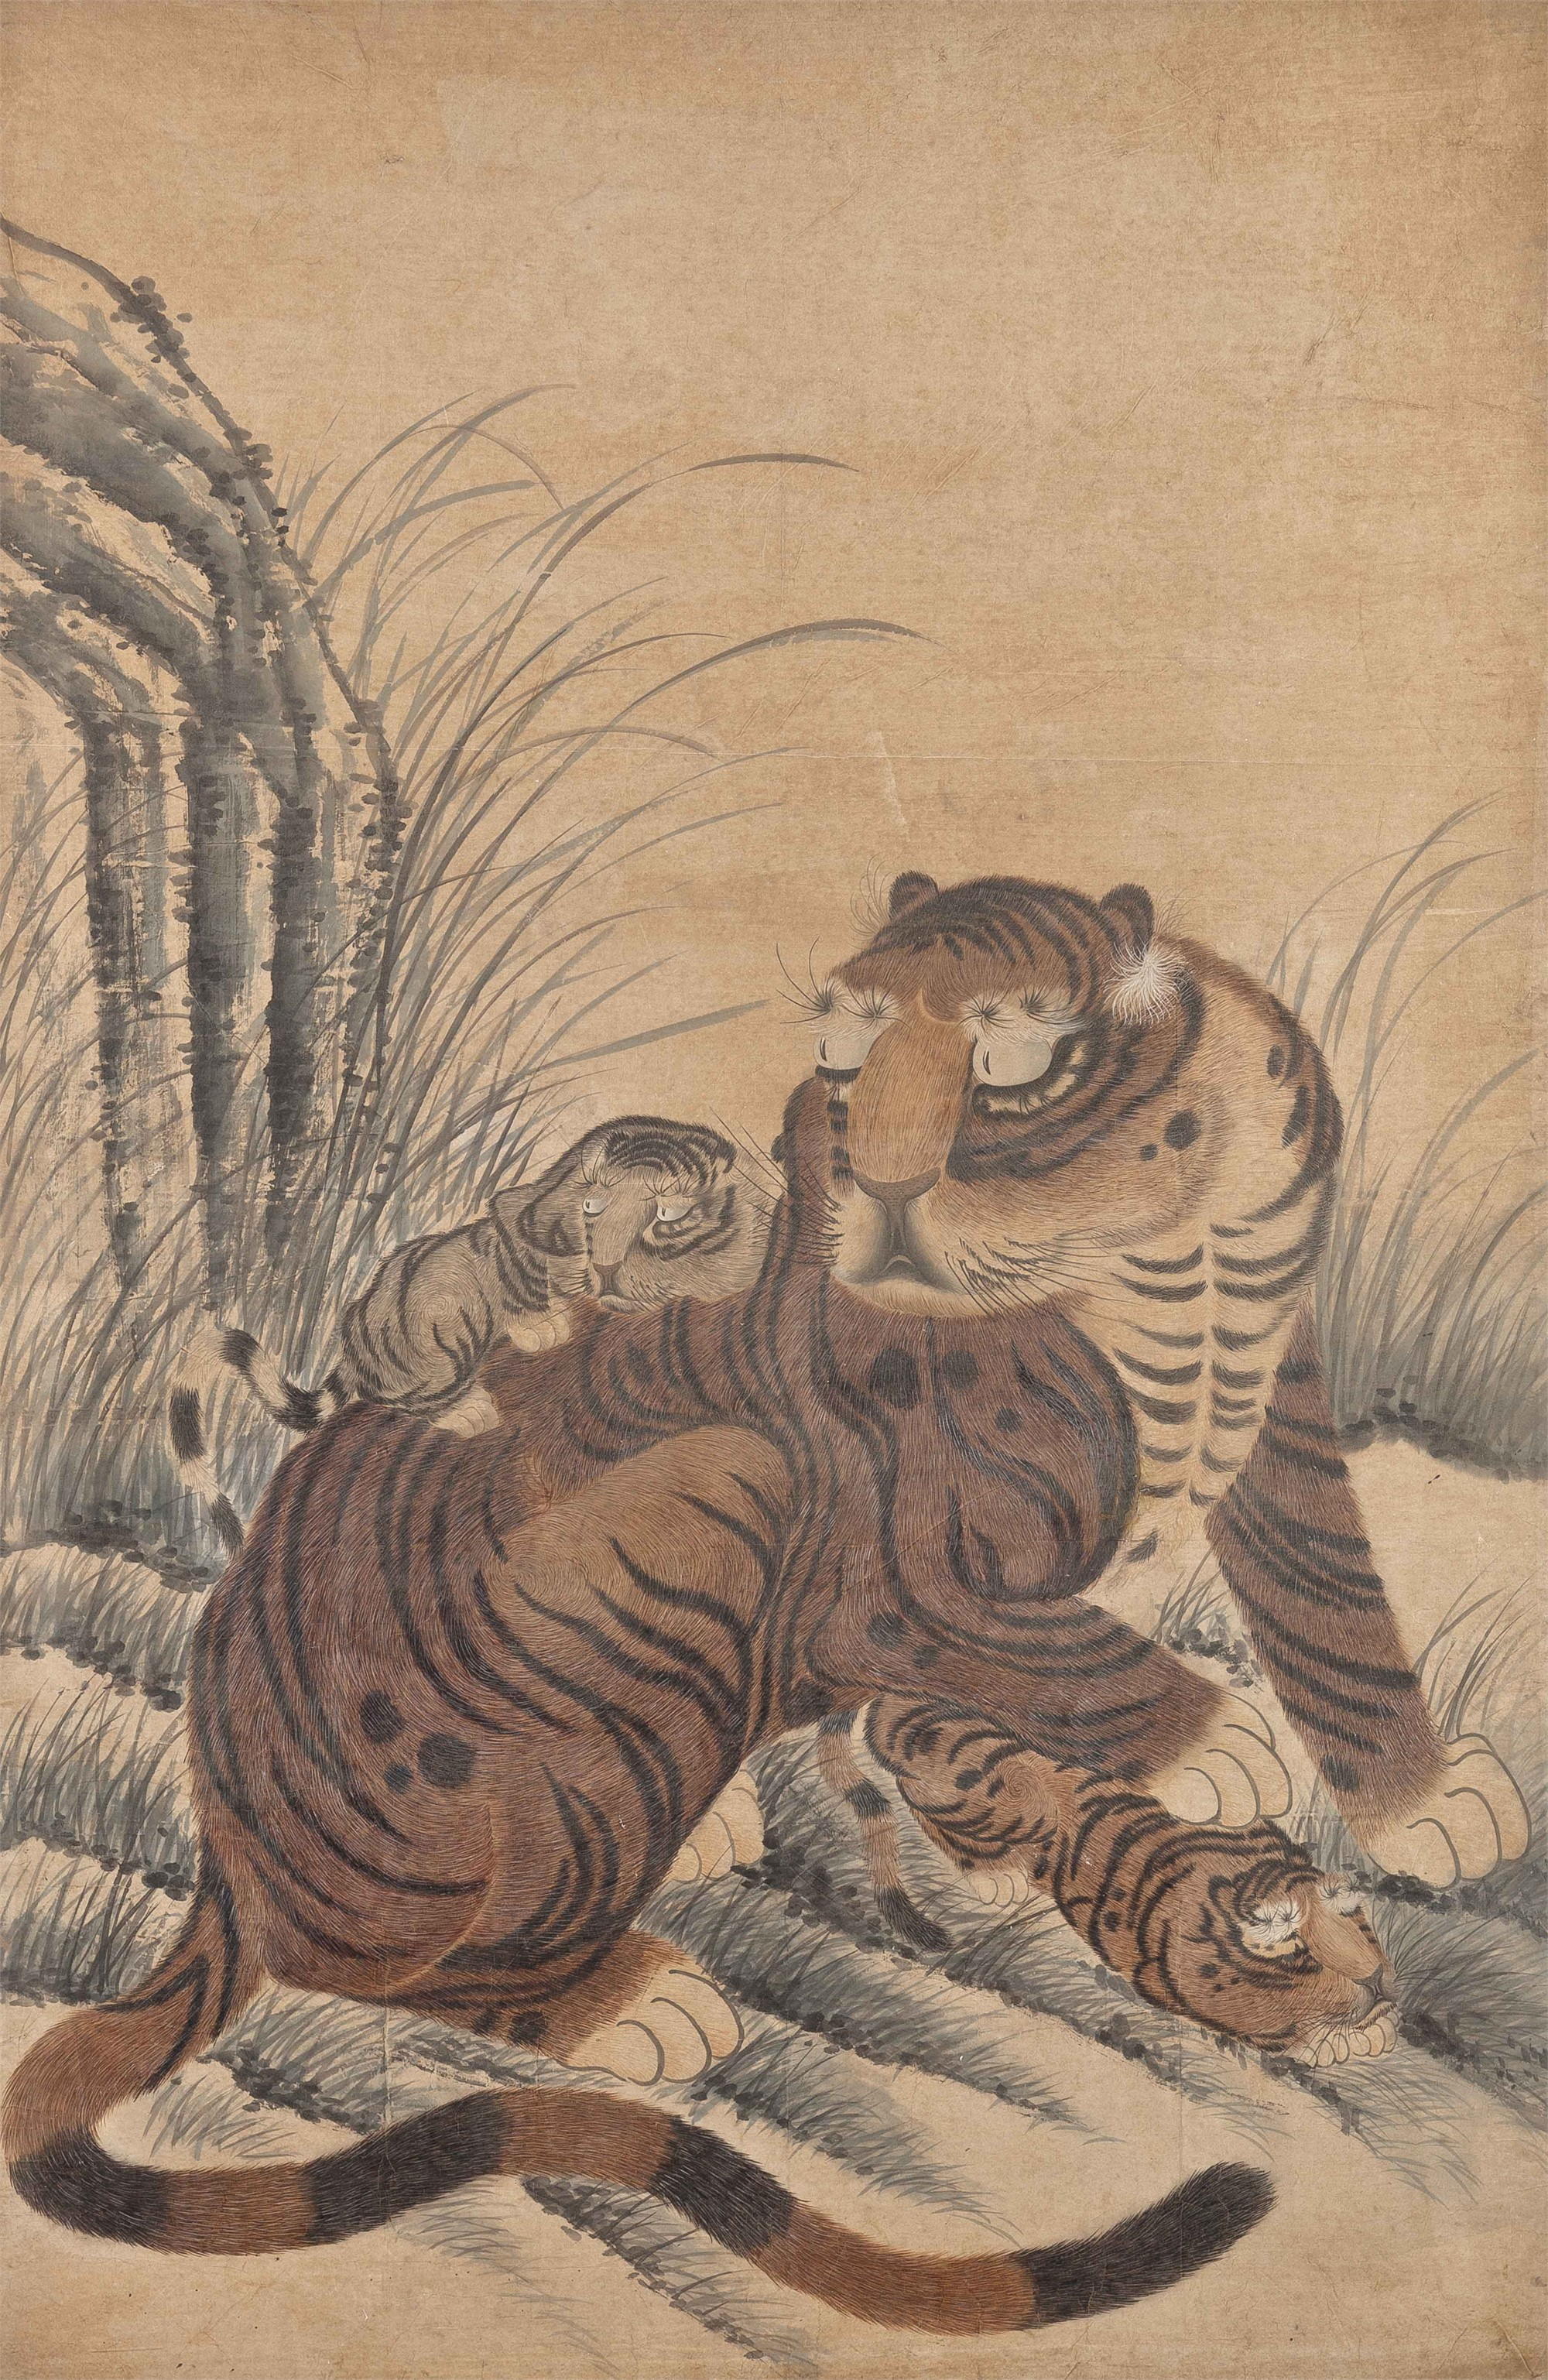 SCROLL OF A TIGER WITH TWO CUBS